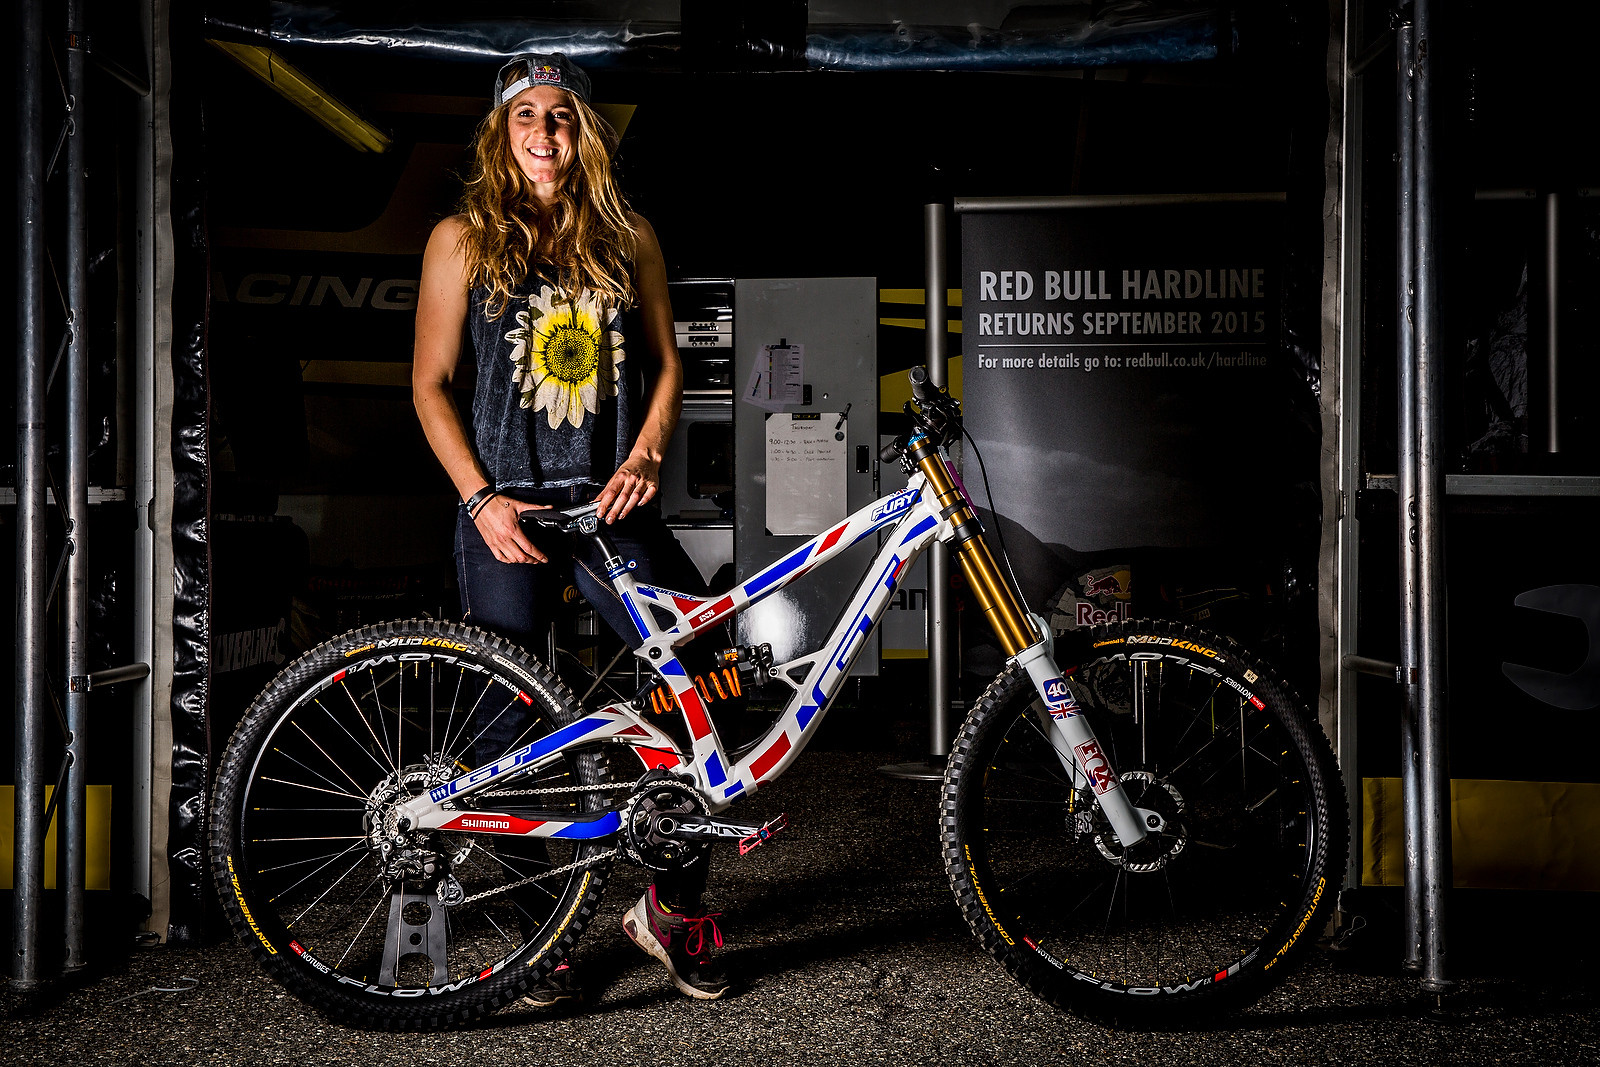 Dirt Bike Wallpaper Girls Winning Bike Rachel Atherton S Gt Fury For World Champs